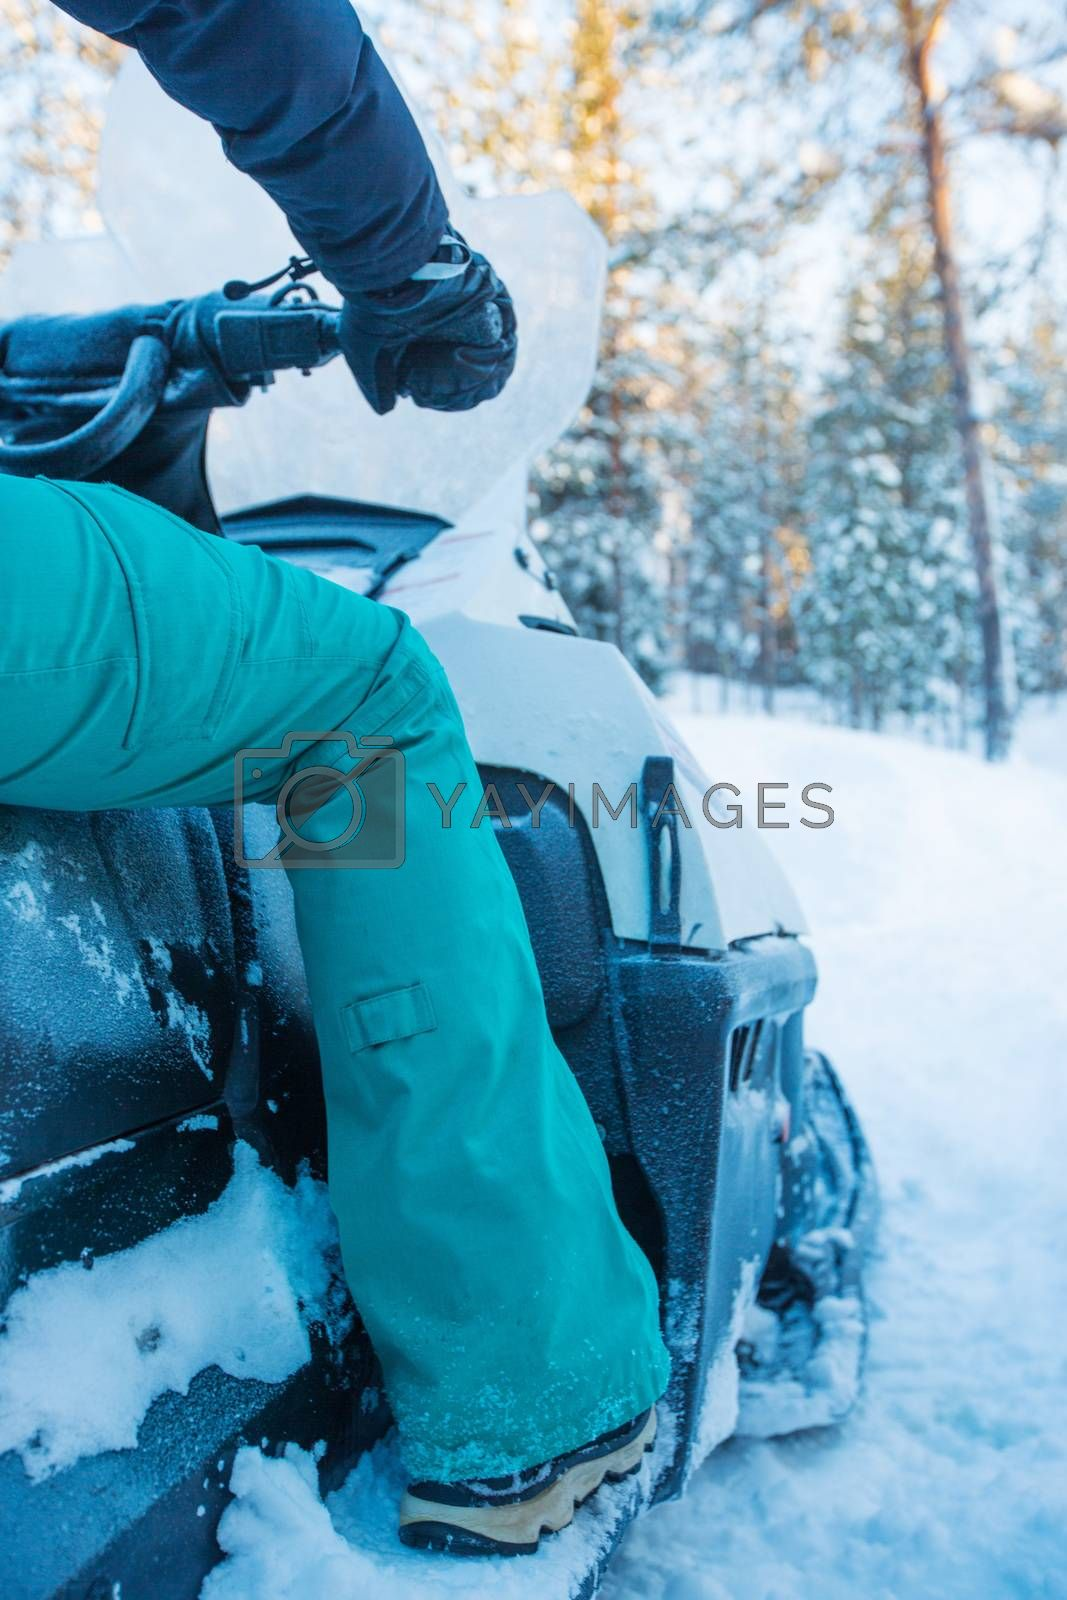 Royalty free image of Rider on the snowmobile by destillat